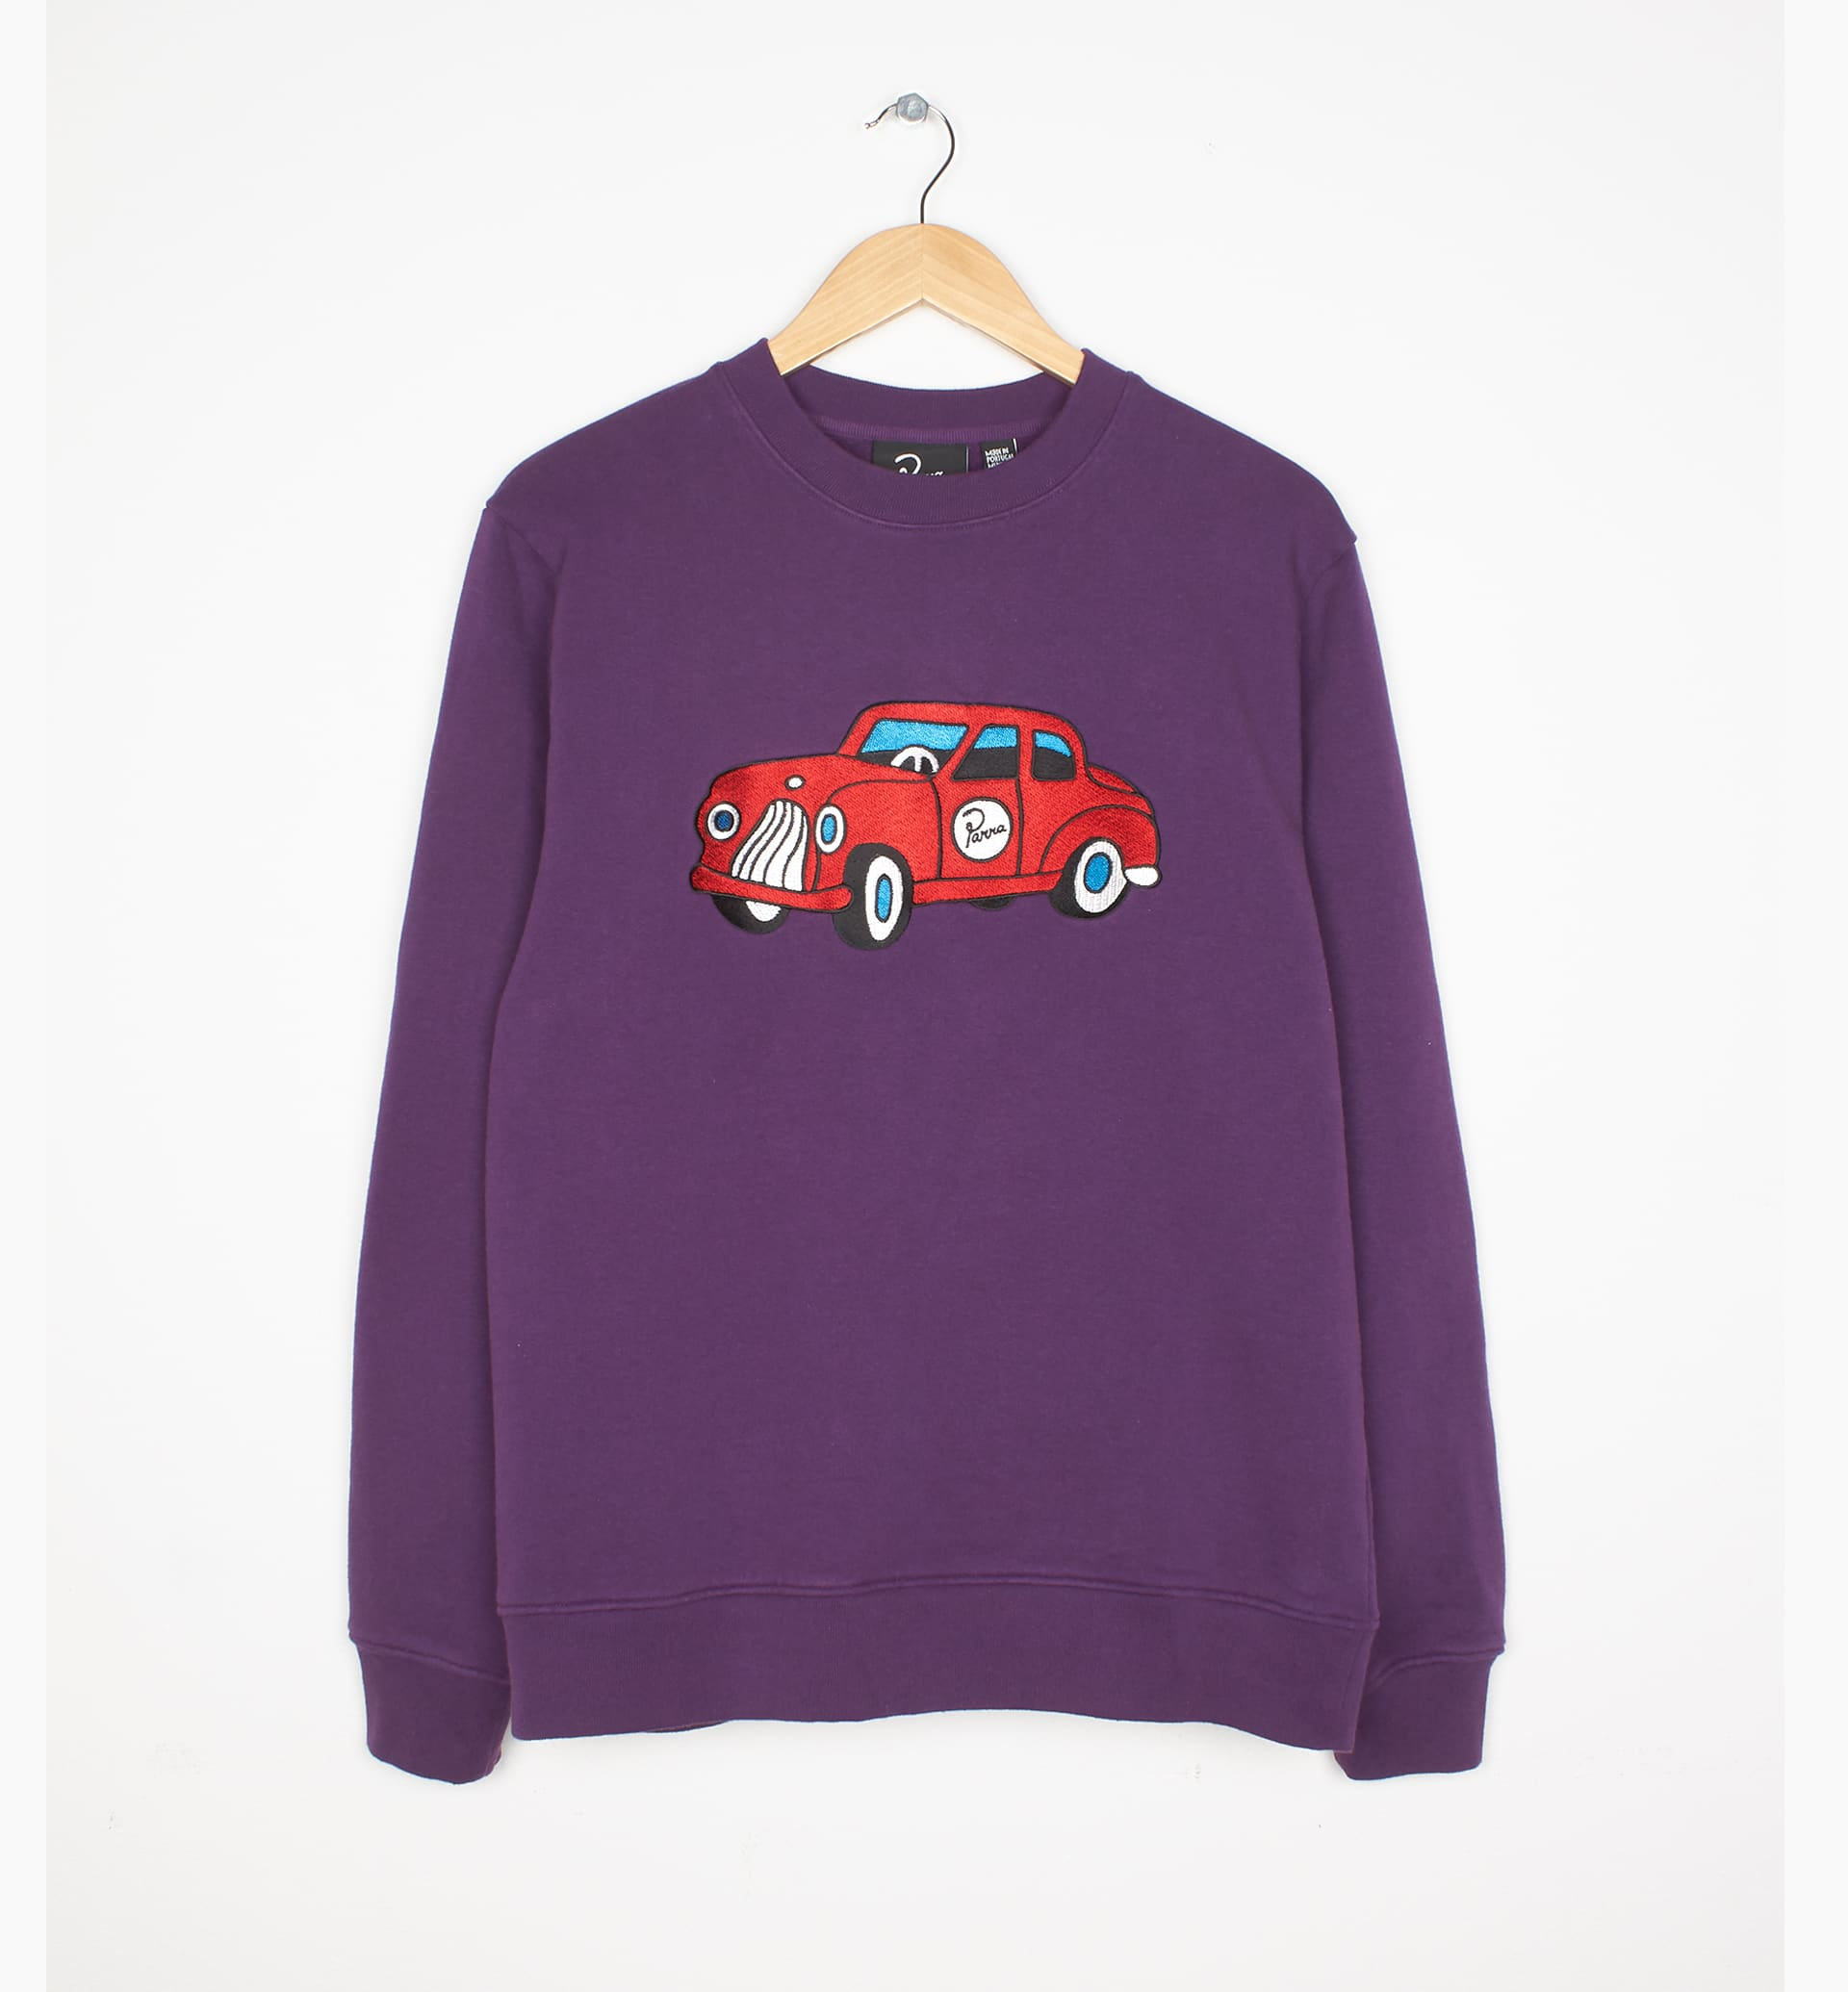 Parra - toy car crew neck sweatshirt